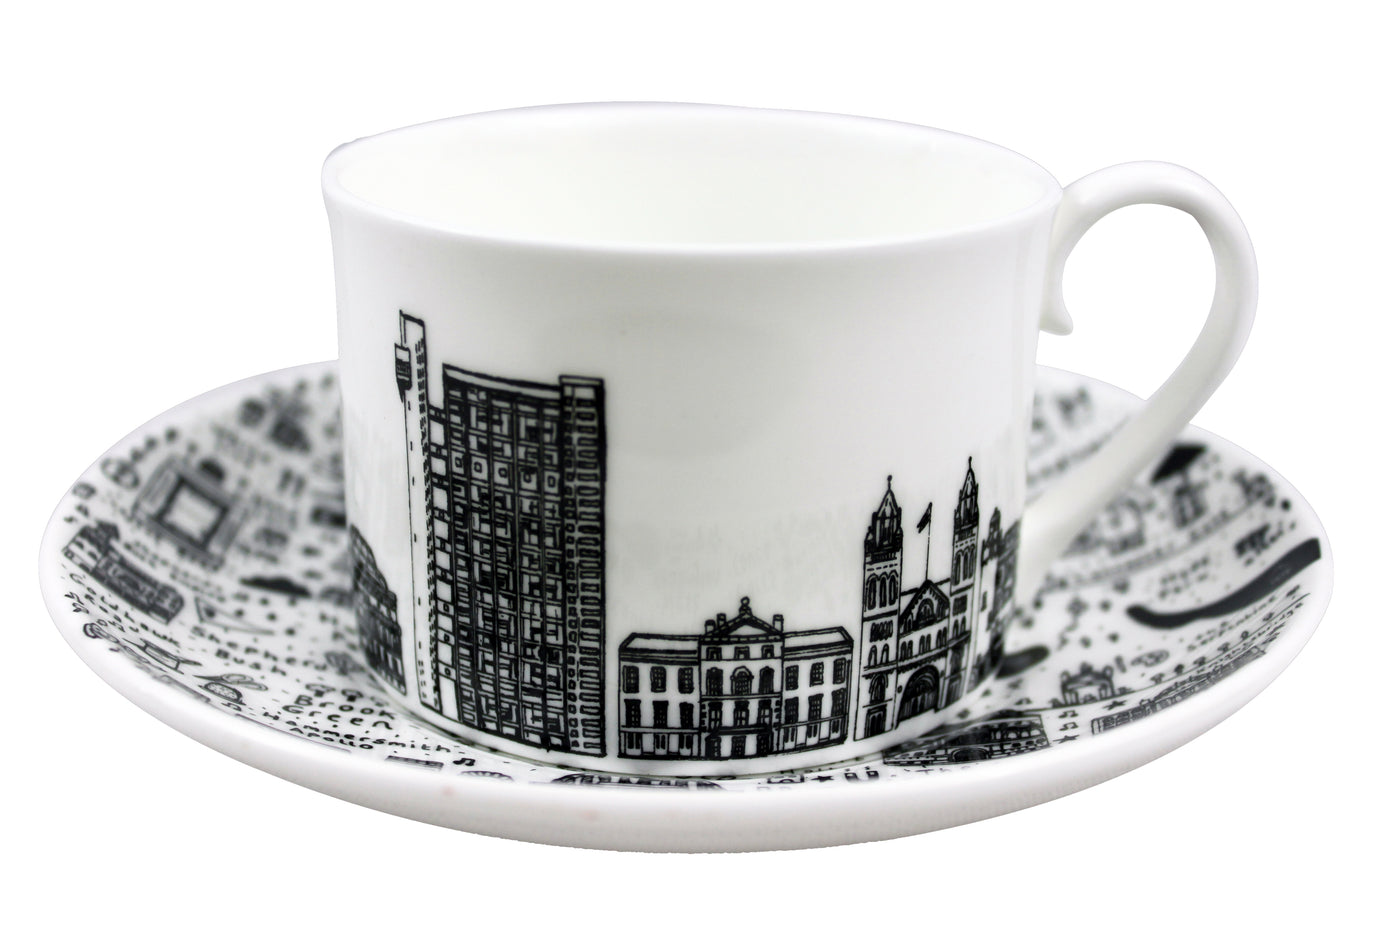 West London Teacup set